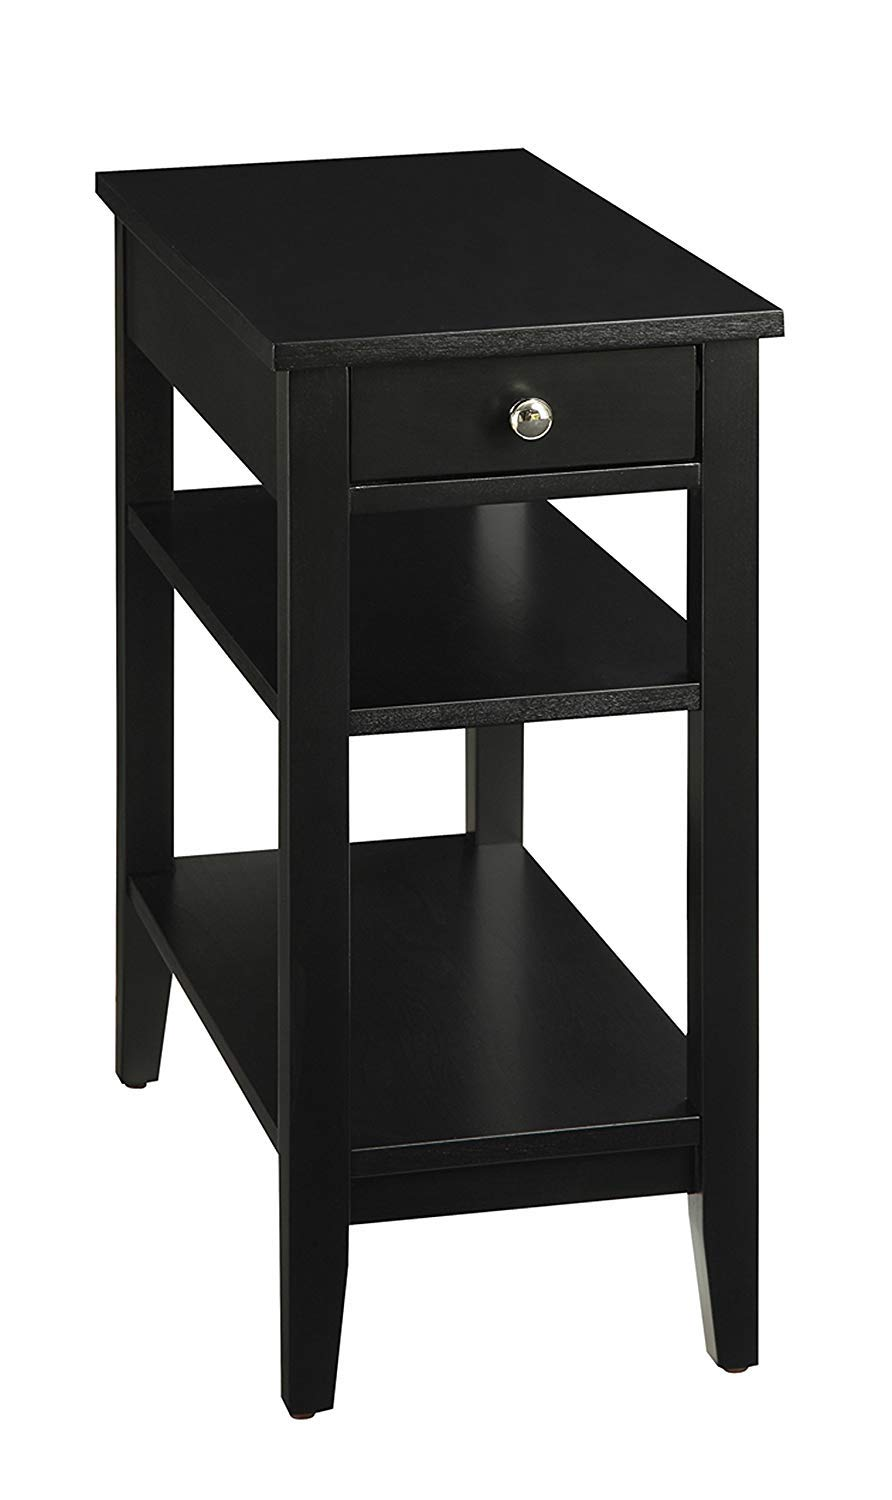 Convenience Concepts American Heritage 3-Tier End Table with Drawer, Black by Convenience Concepts